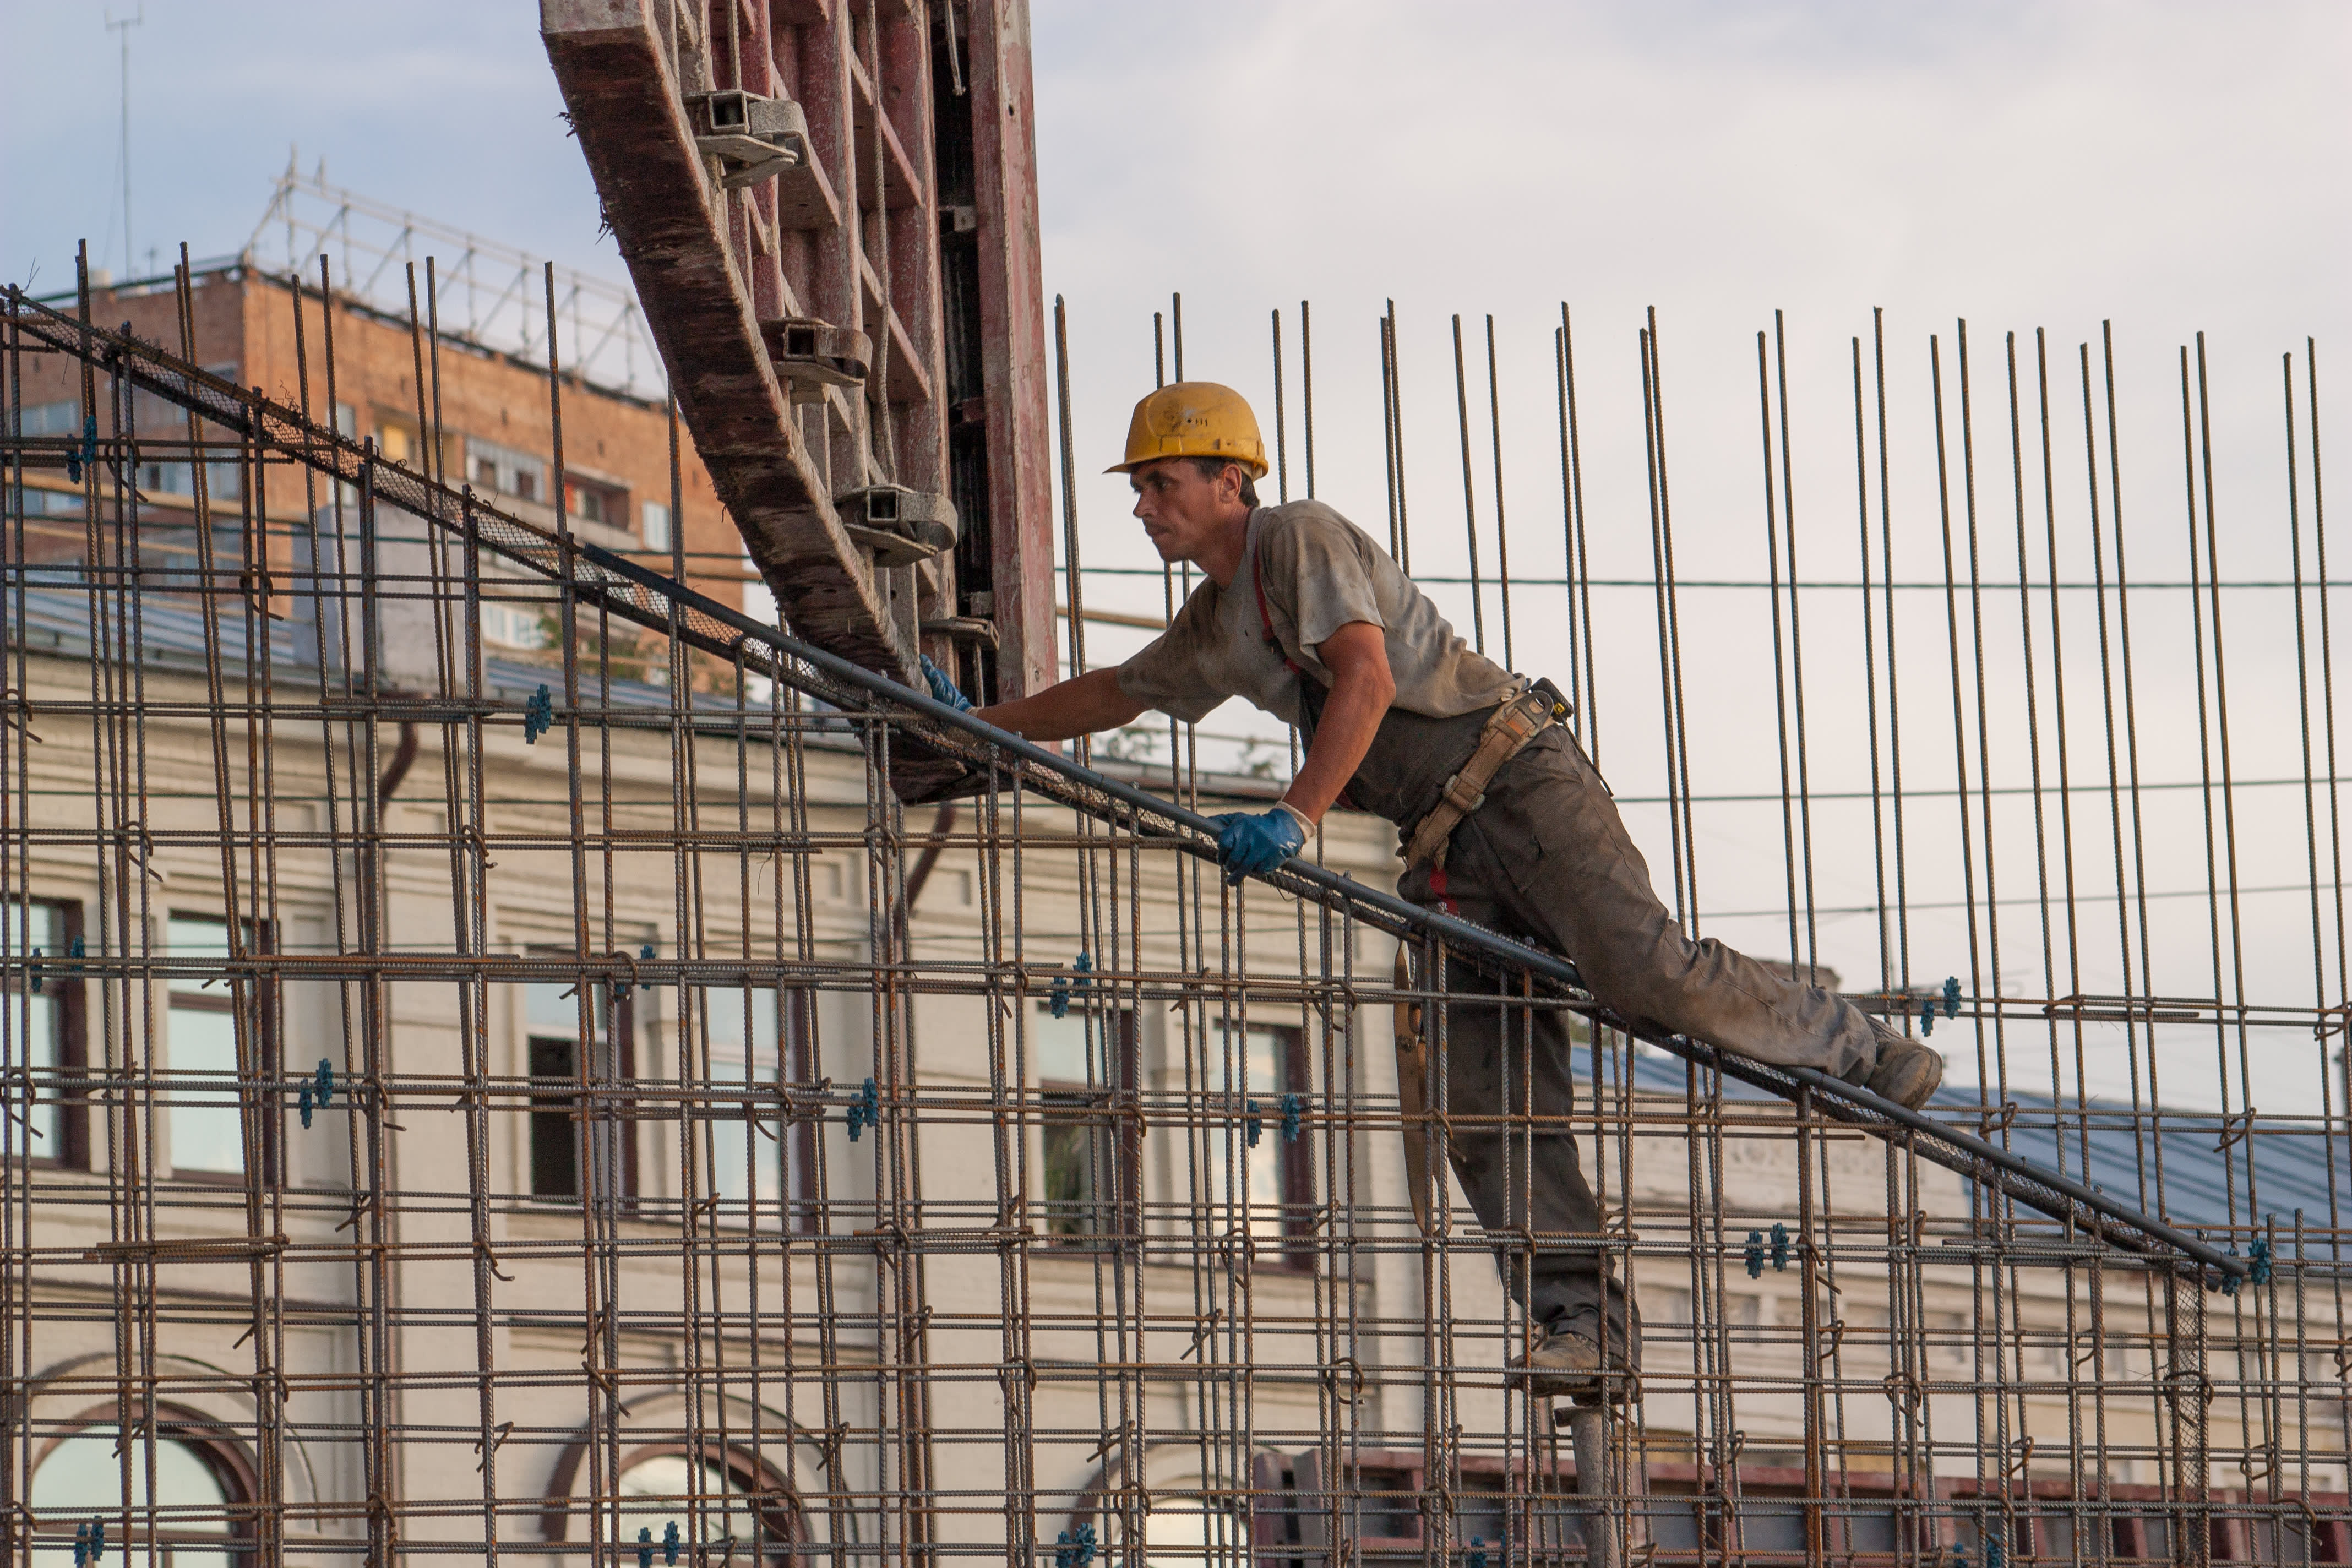 US suicide rates rise 40% over 17 years with blue collar workers at highest risk, CDC finds